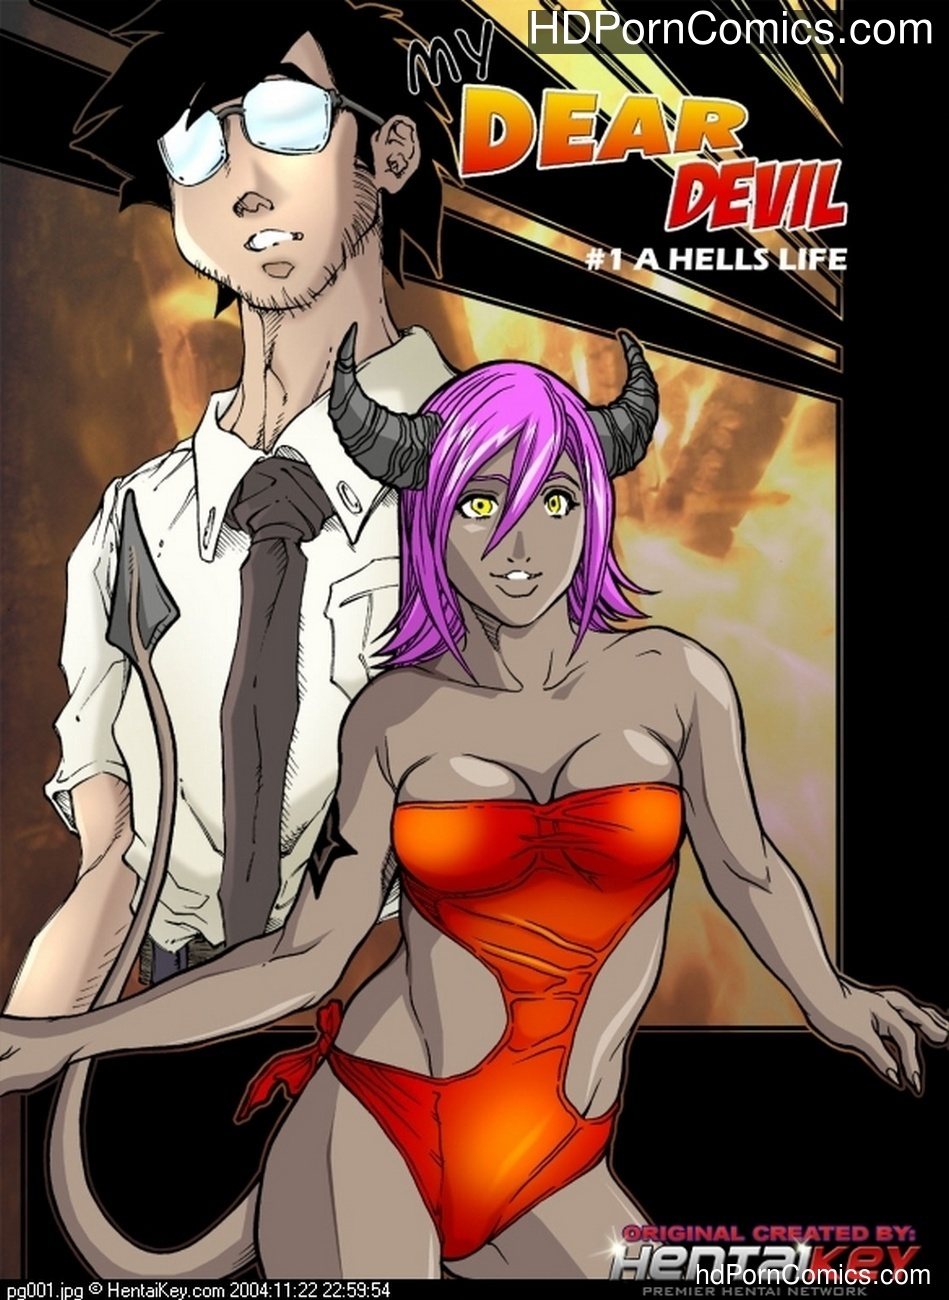 My Dear Devil 1 – A Hells Life Sex Comic